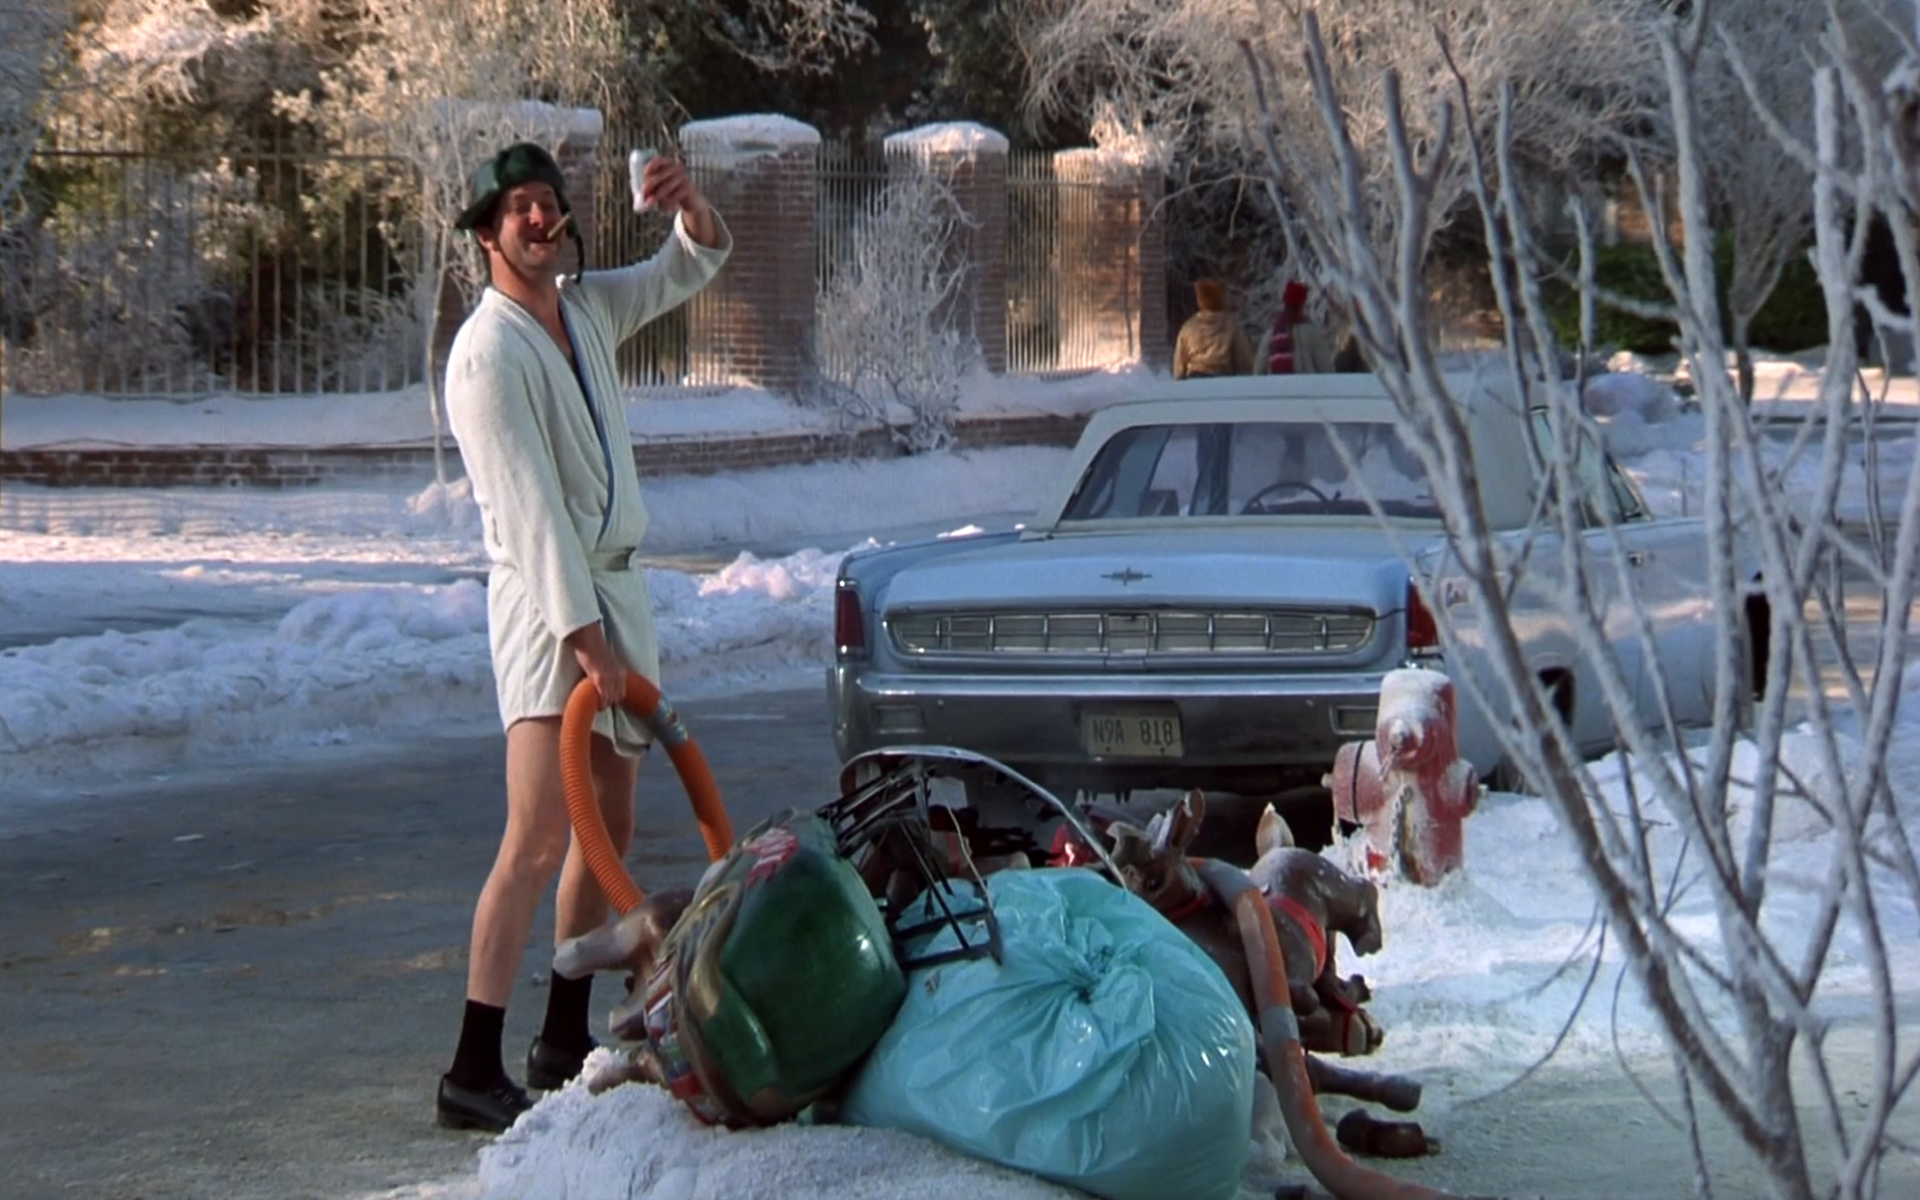 5 national lampoons christmas vacation hd wallpapers background images wallpaper abyss - National Lampoons Christmas Vacation Pictures